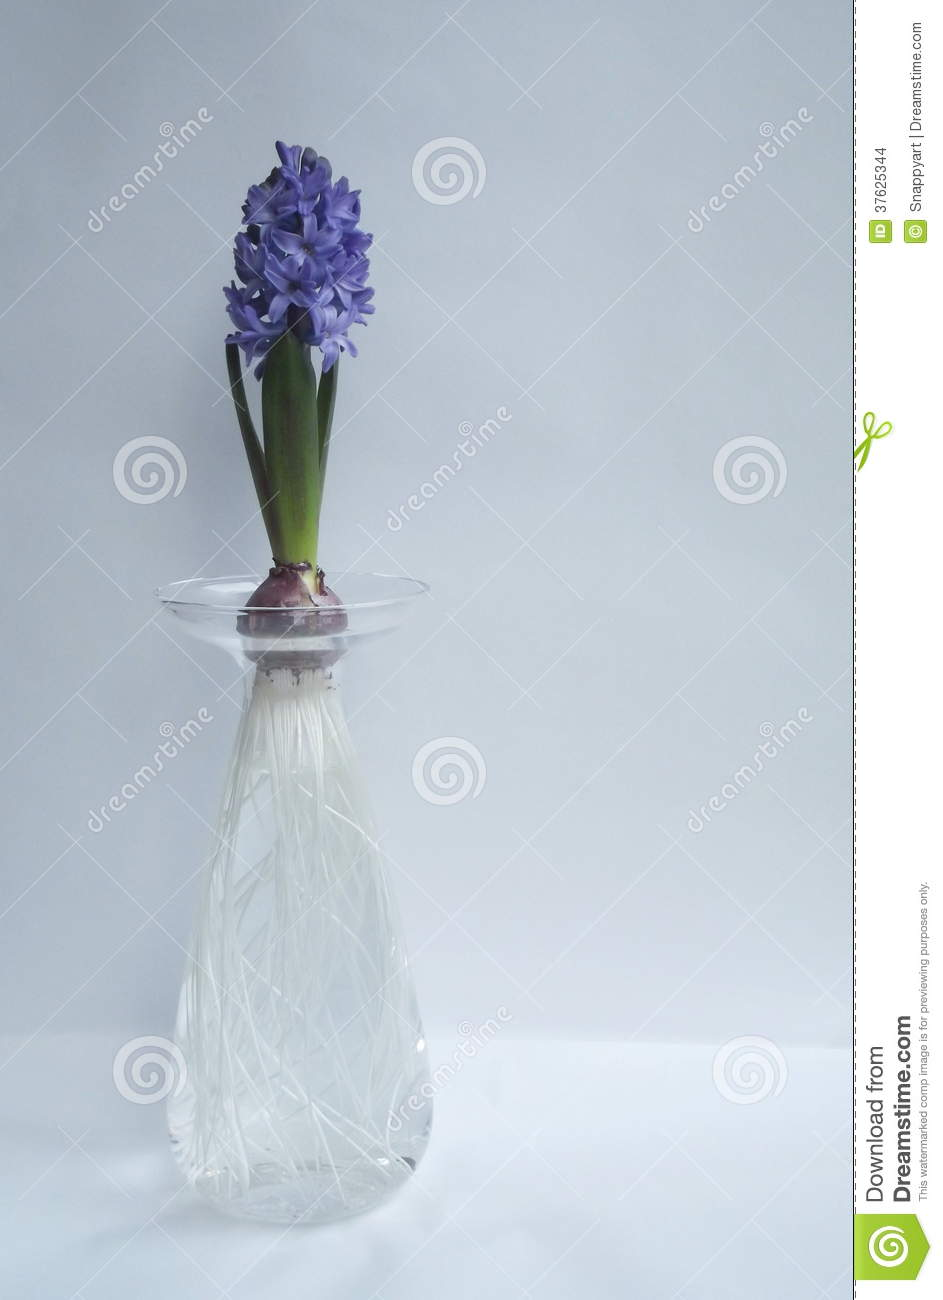 Hyacinth Blue Flower Bulb And Roots In Glass Vase Stock Images - Image: 37625344